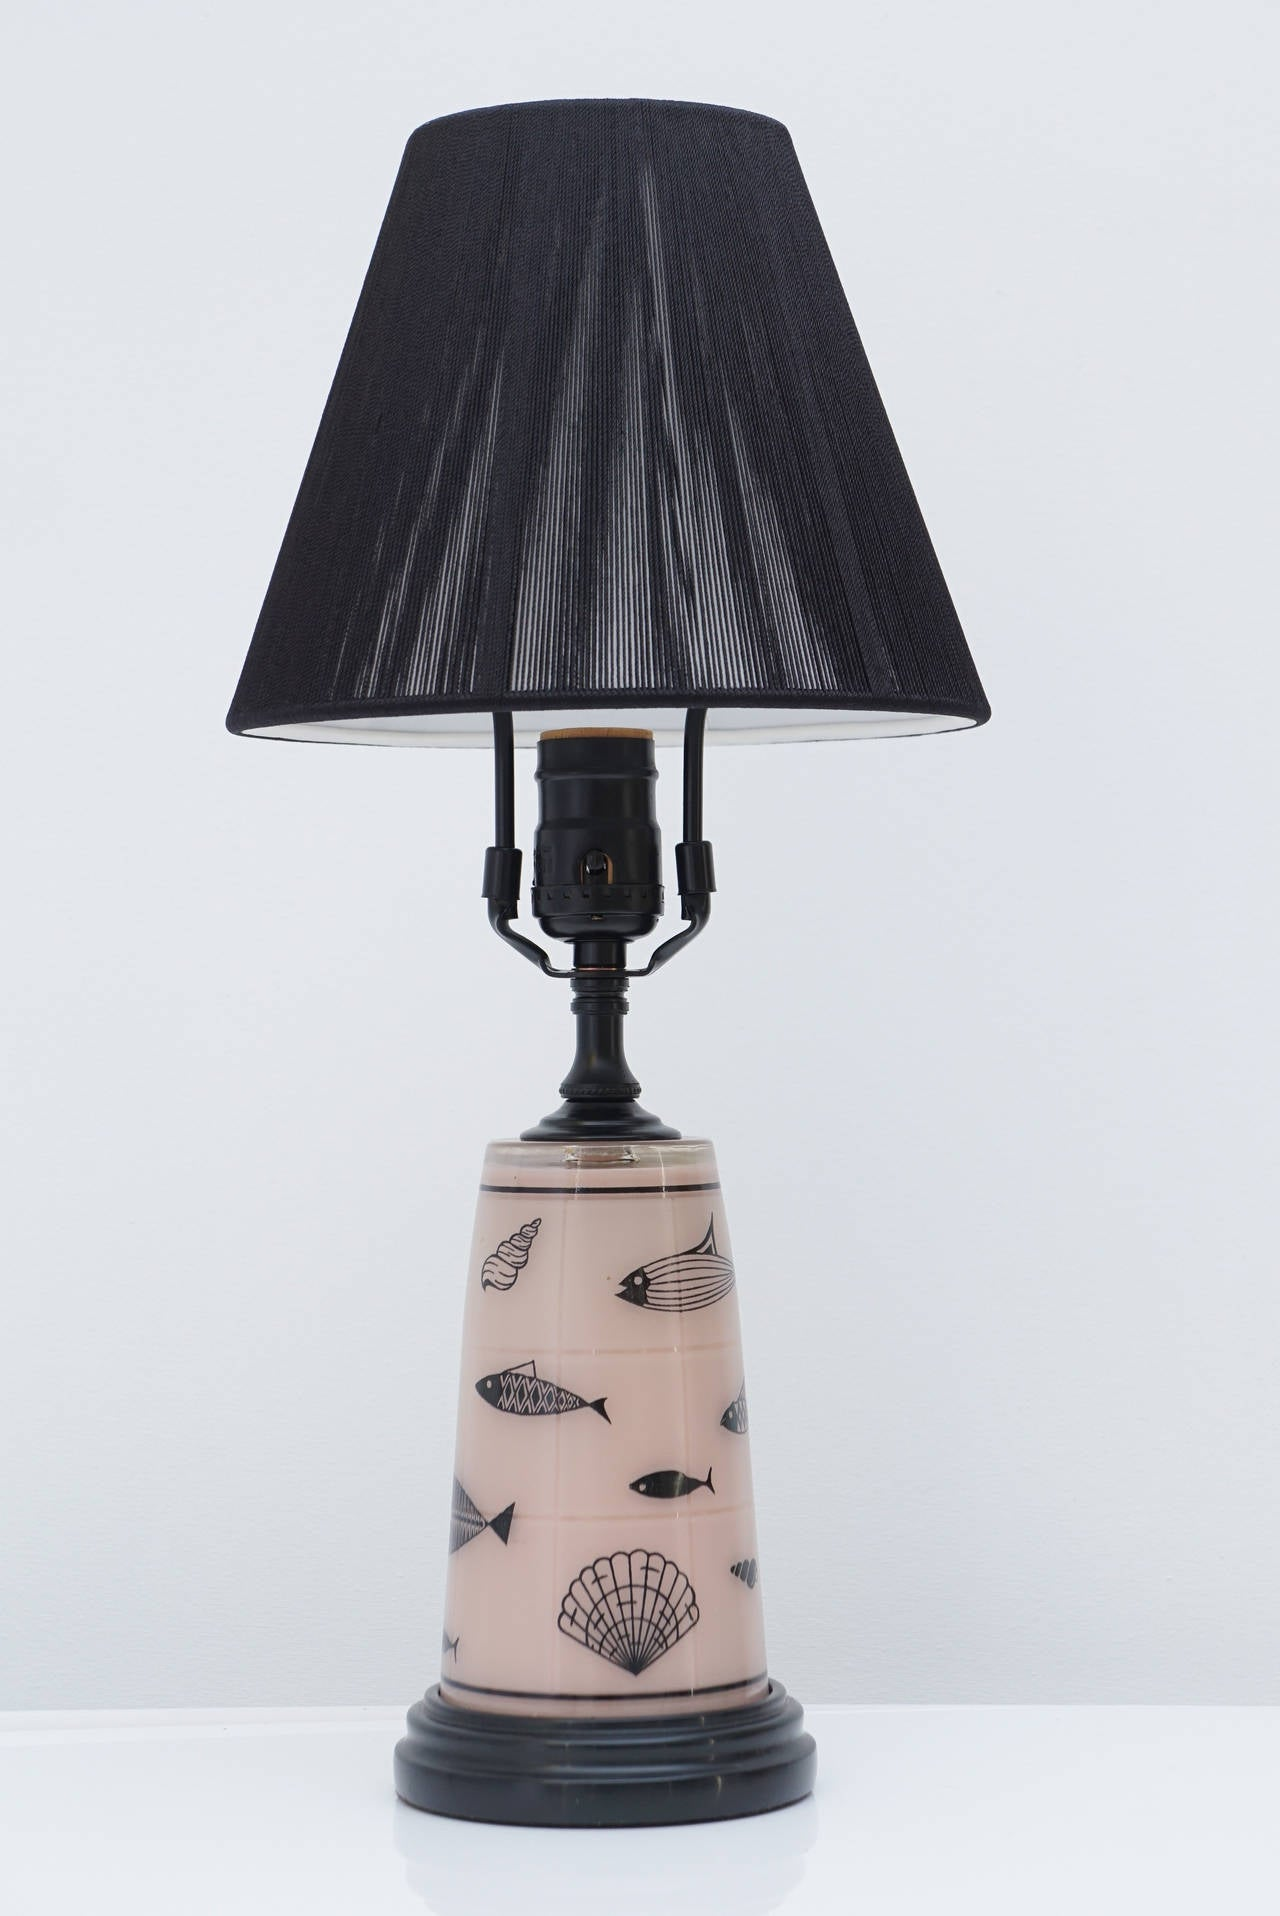 1950s glass and wood table lamp for sale at 1stdibs. Black Bedroom Furniture Sets. Home Design Ideas